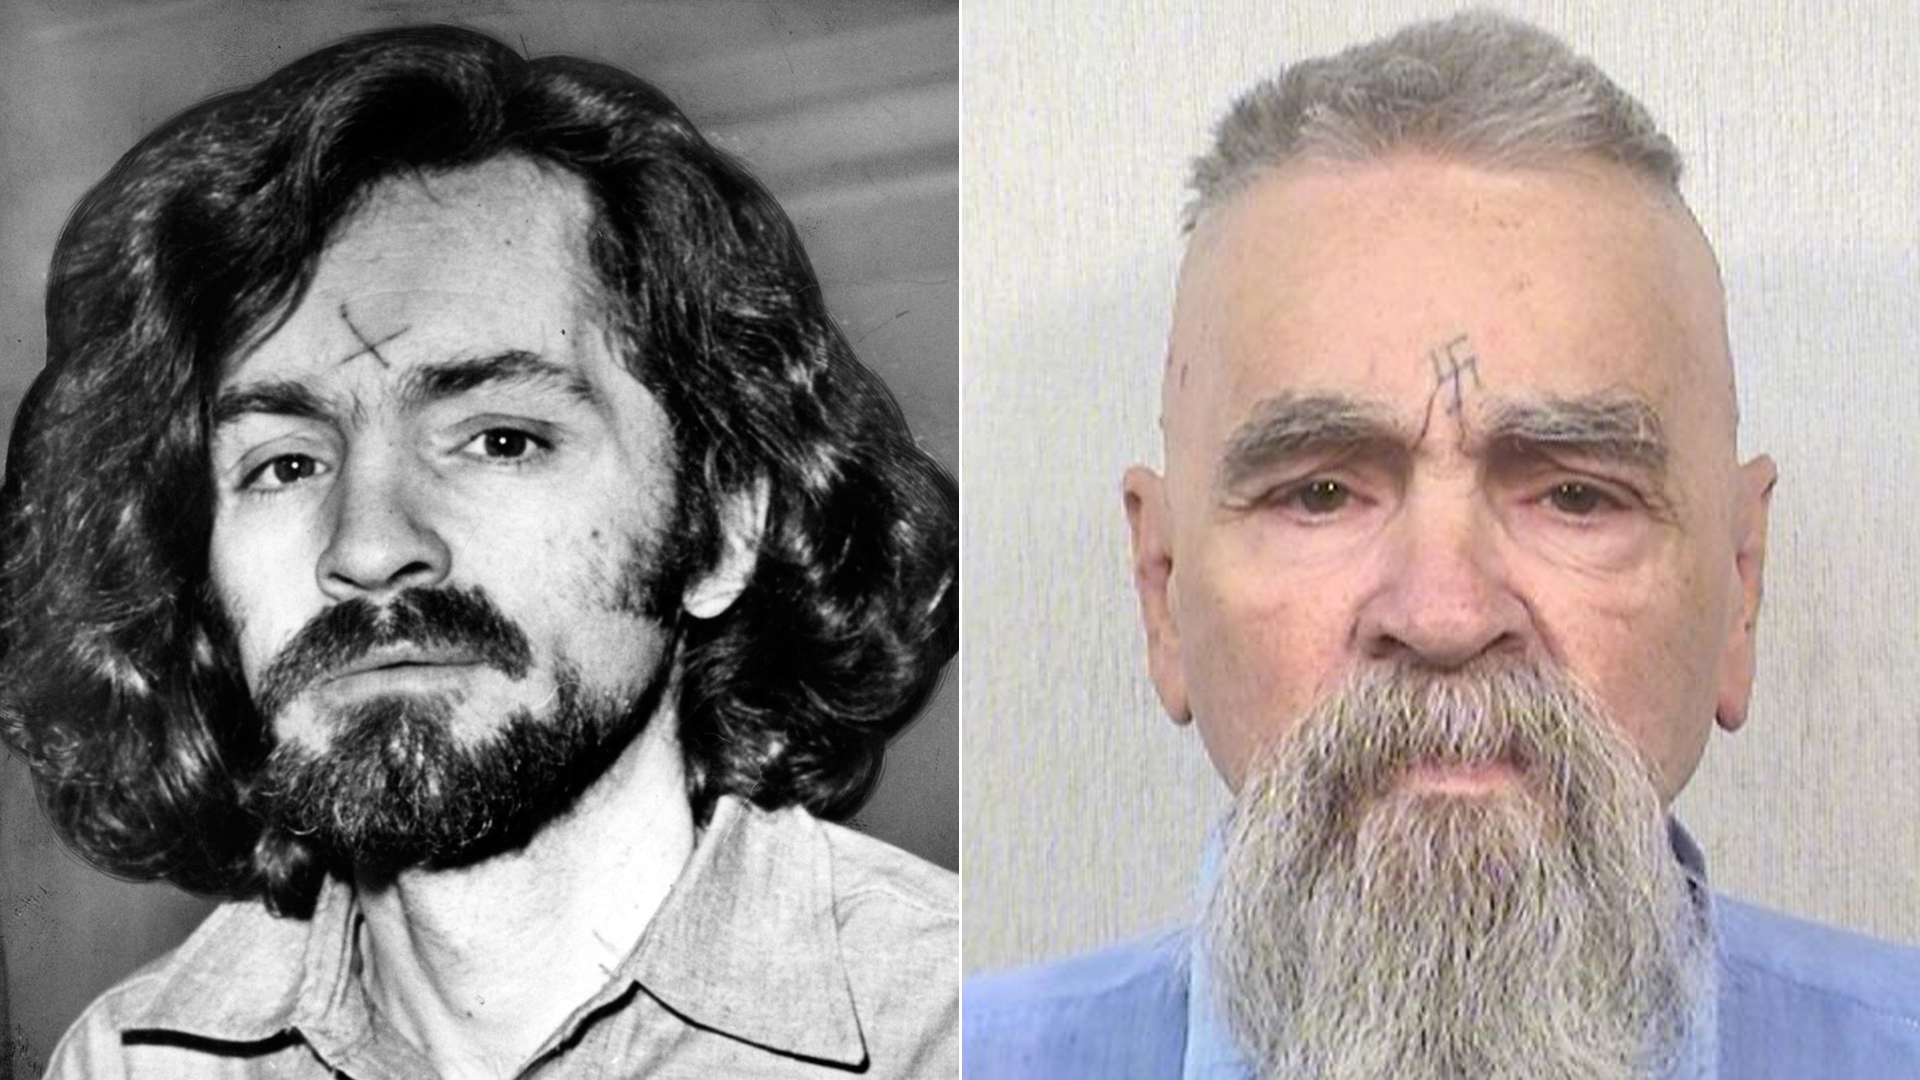 Charles Manson is seen en route to a Los Angeles courtroom in December 1970, left. Right, his state prison system inmate photo shows him on Oct. 8, 2014. (Credit: left, John Malmin / Los Angeles Times; right, California Department of Corrections and Rehabilitation)